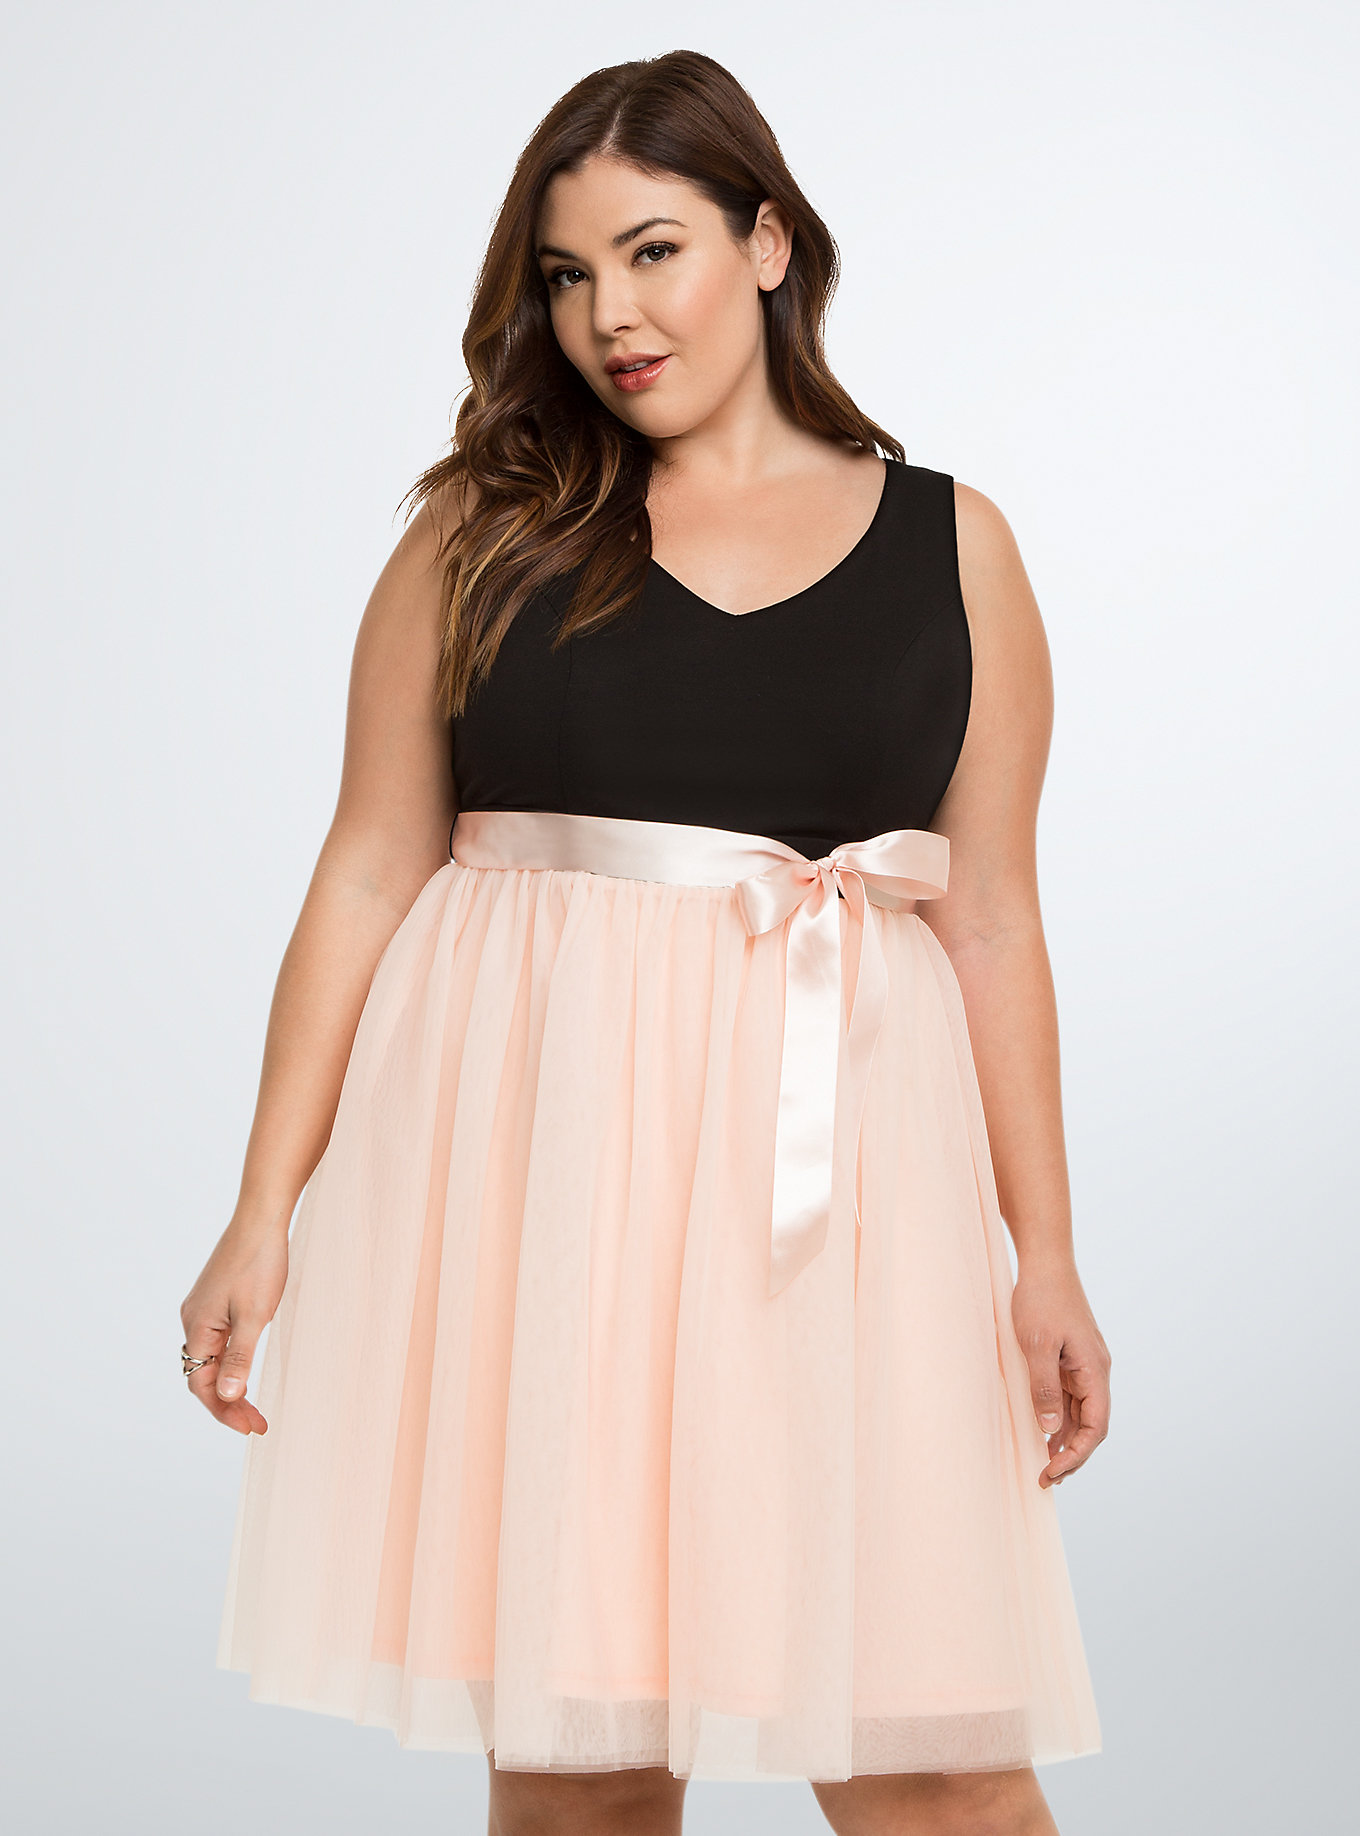 Tulle Skirt Skater Dress